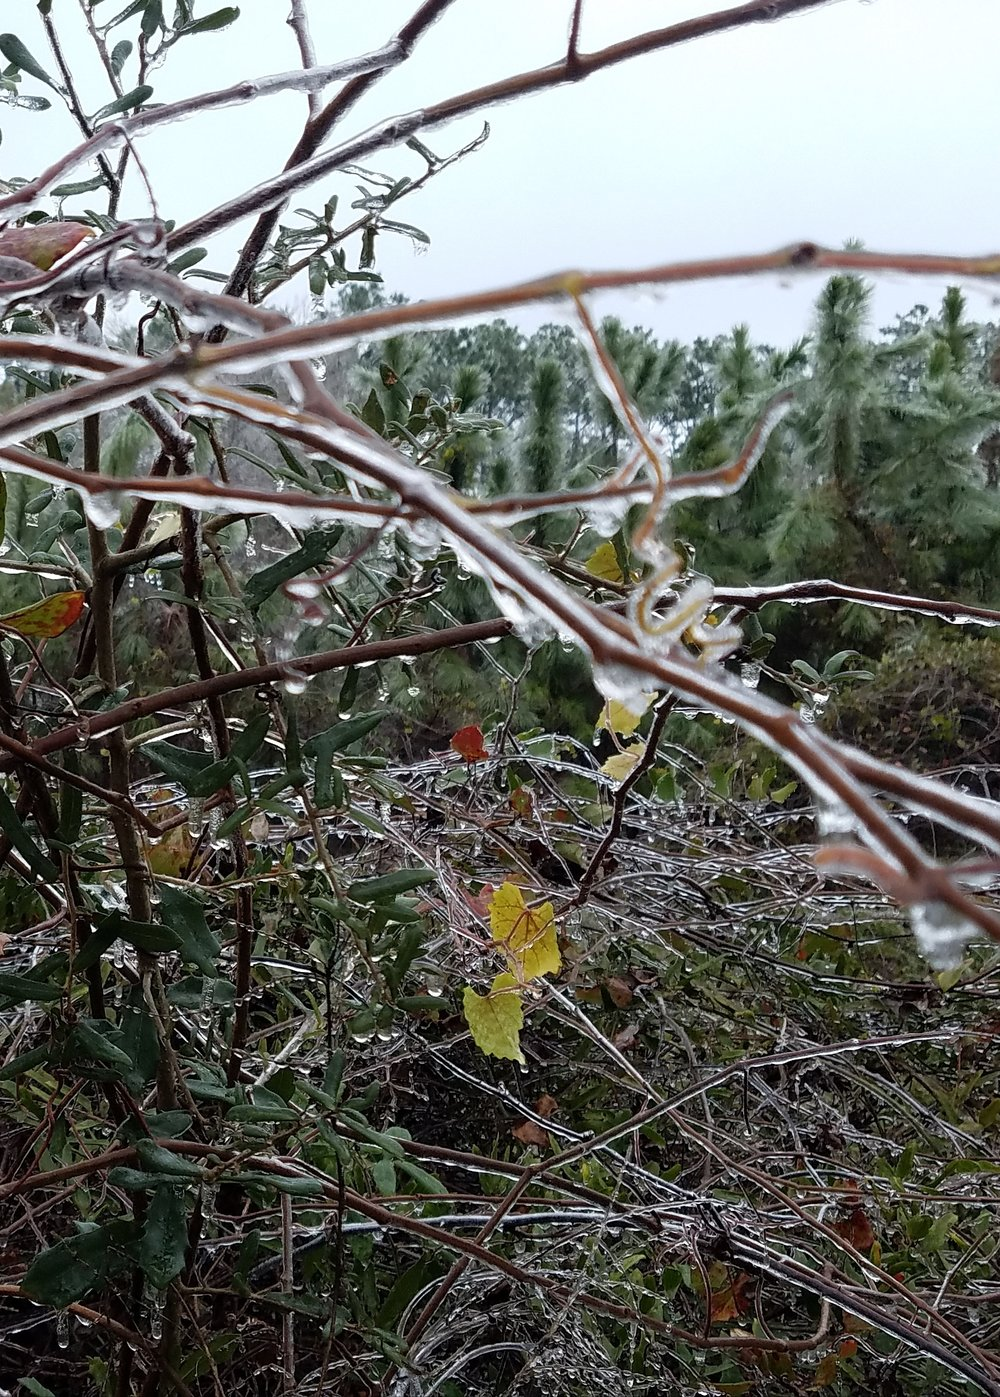 Ice on the branches.